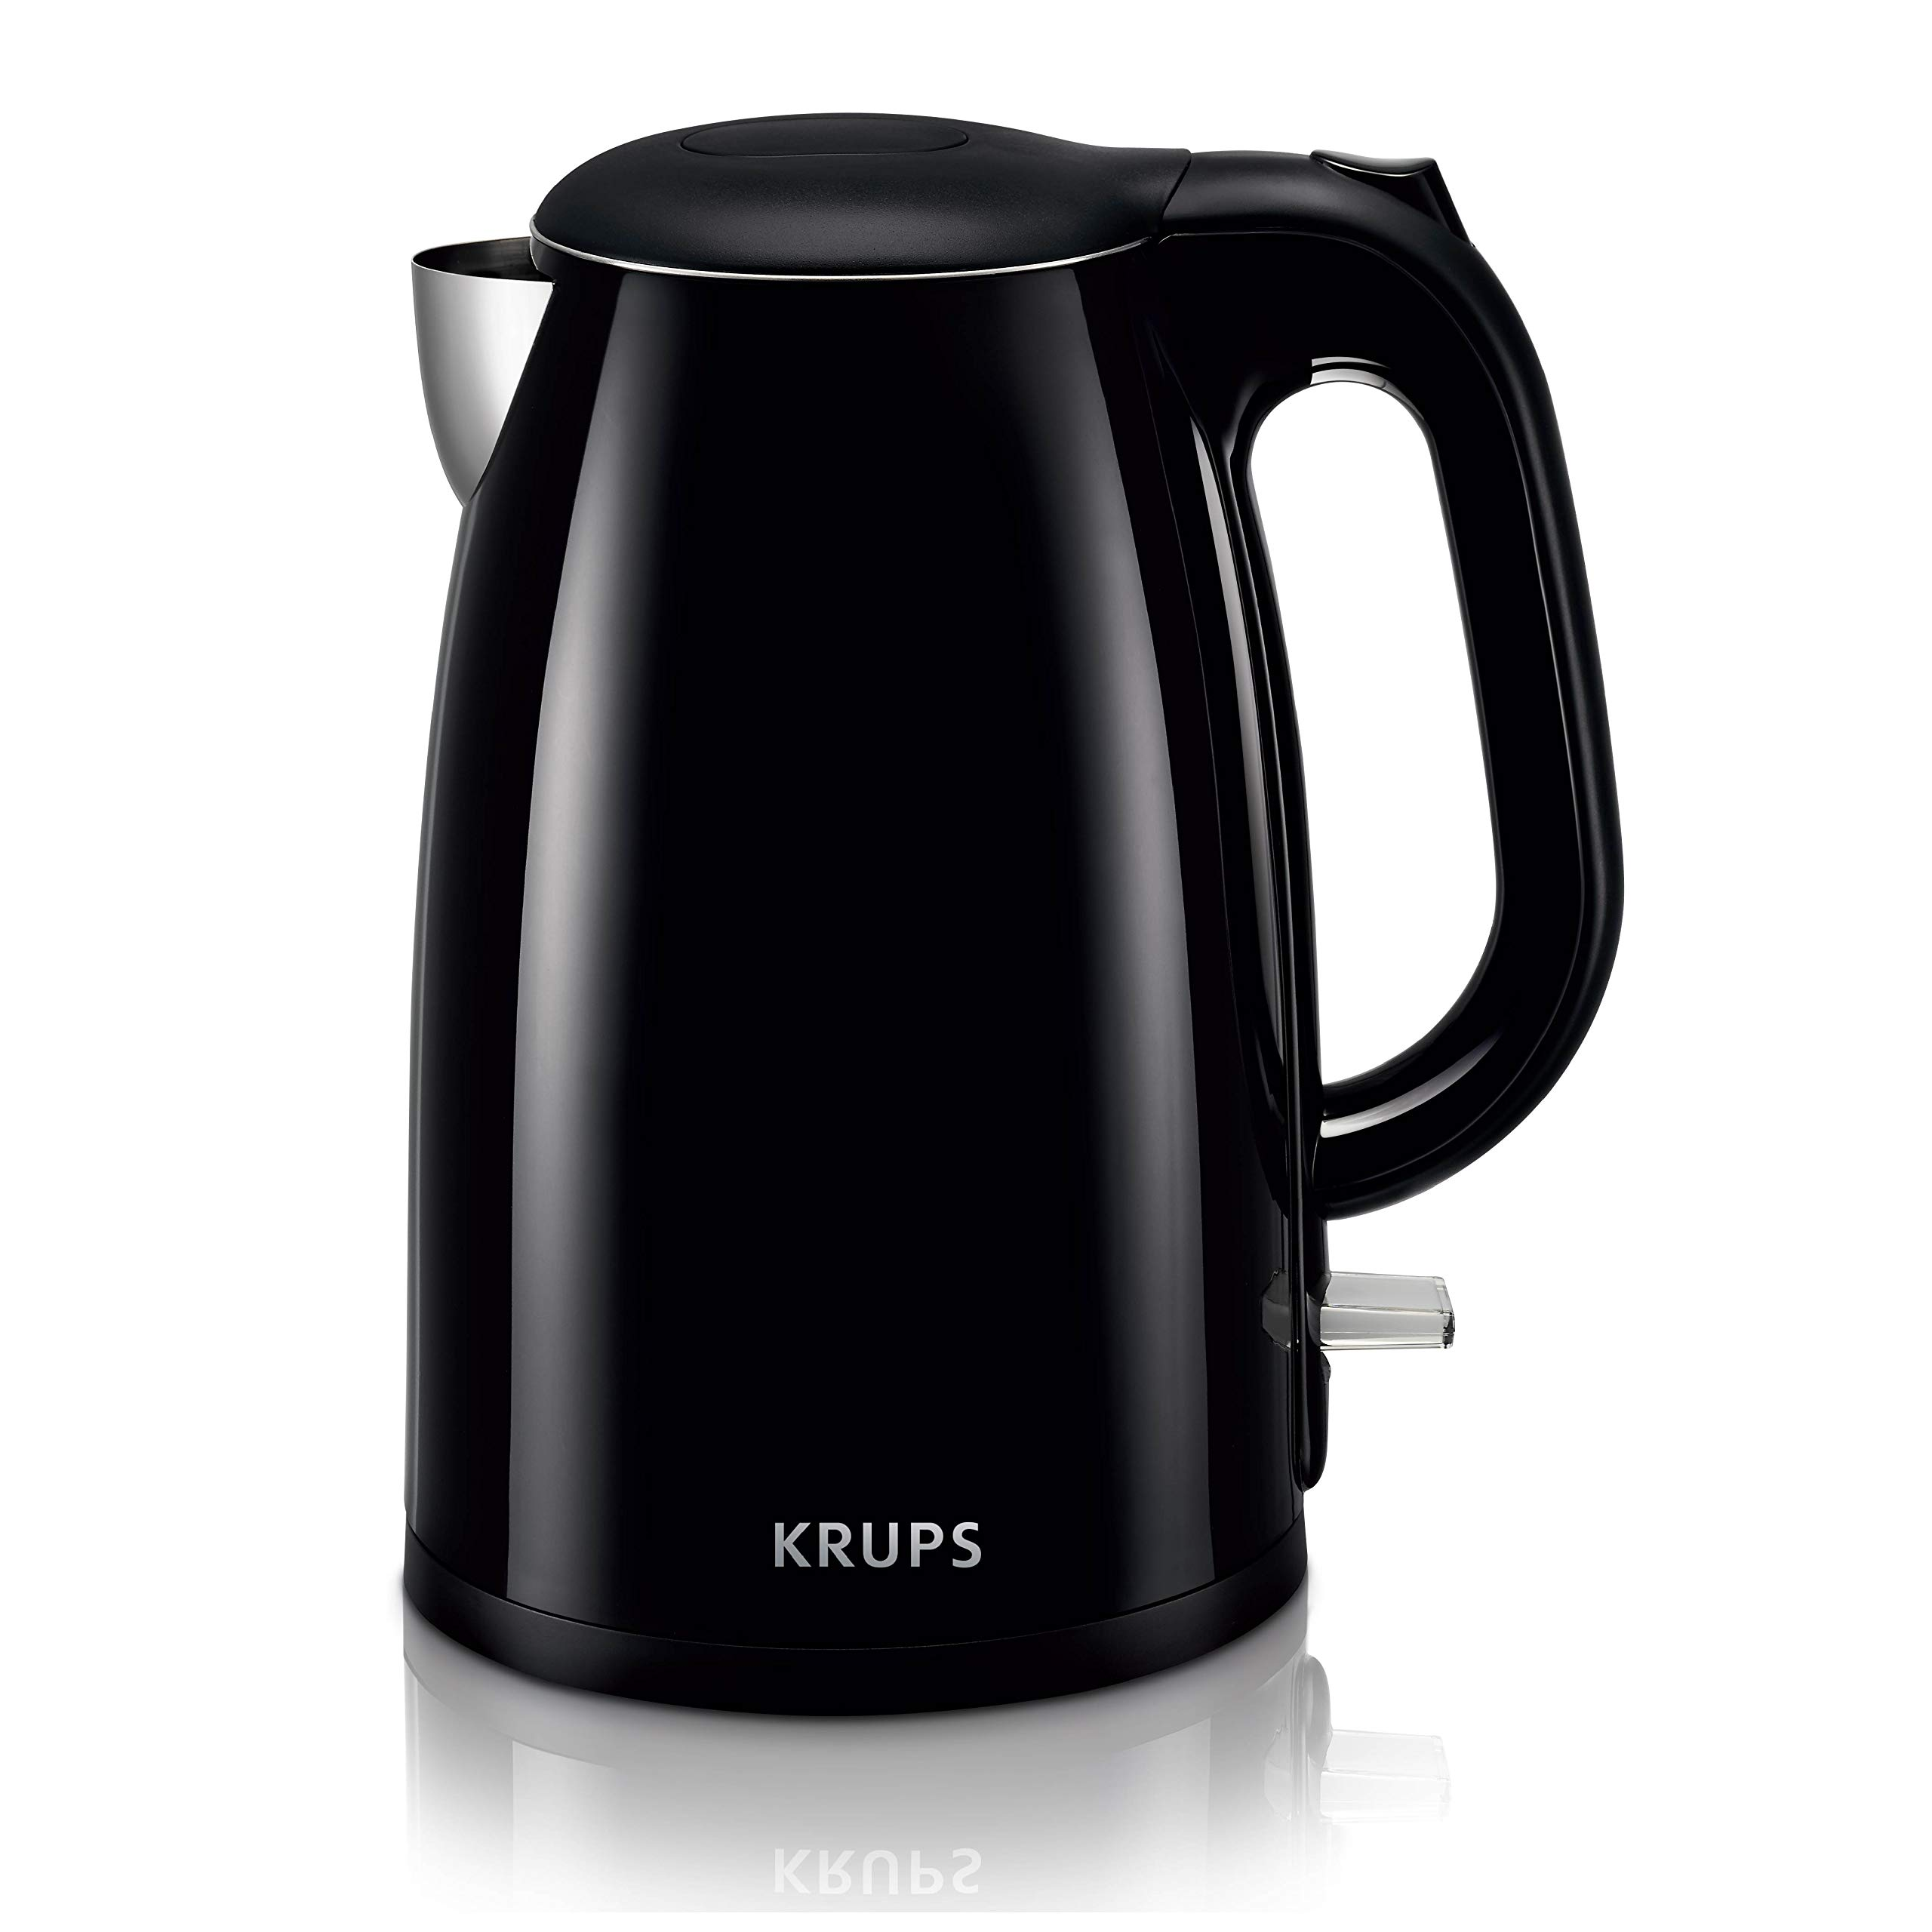 KRUPS BW26 Cool-touch Stainless Steel Double Wall Electric Kettle, 1.5L, Black by KRUPS